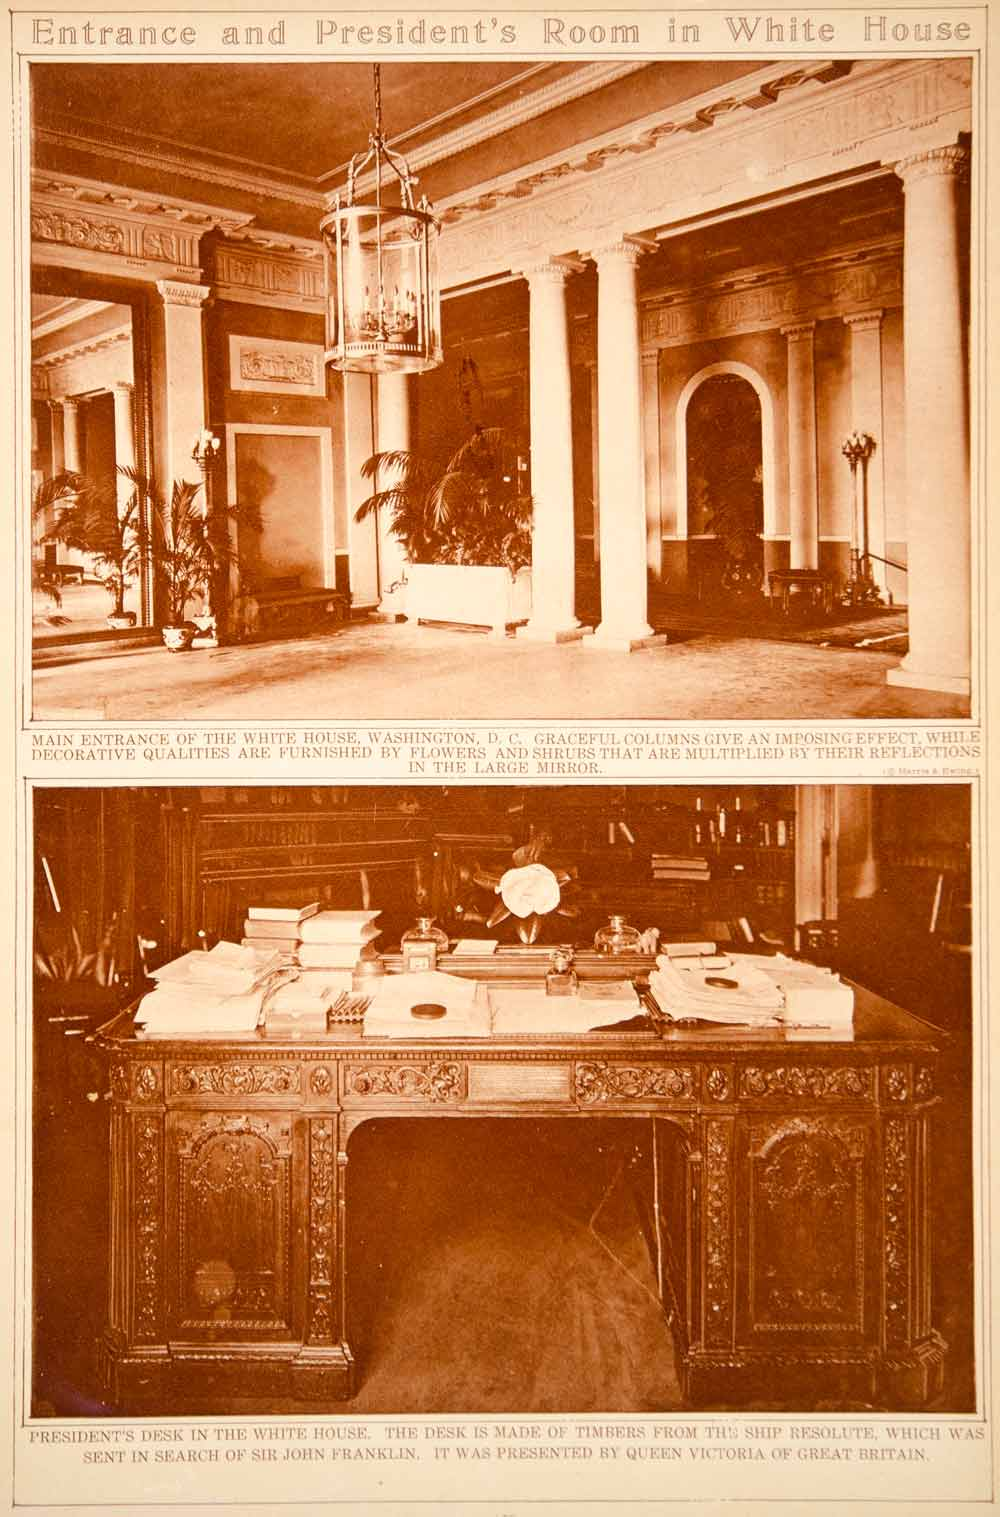 Remarkable 1923 Rotogravure White House Entrance Hall Resolute Desk Oval Office Historic Download Free Architecture Designs Itiscsunscenecom